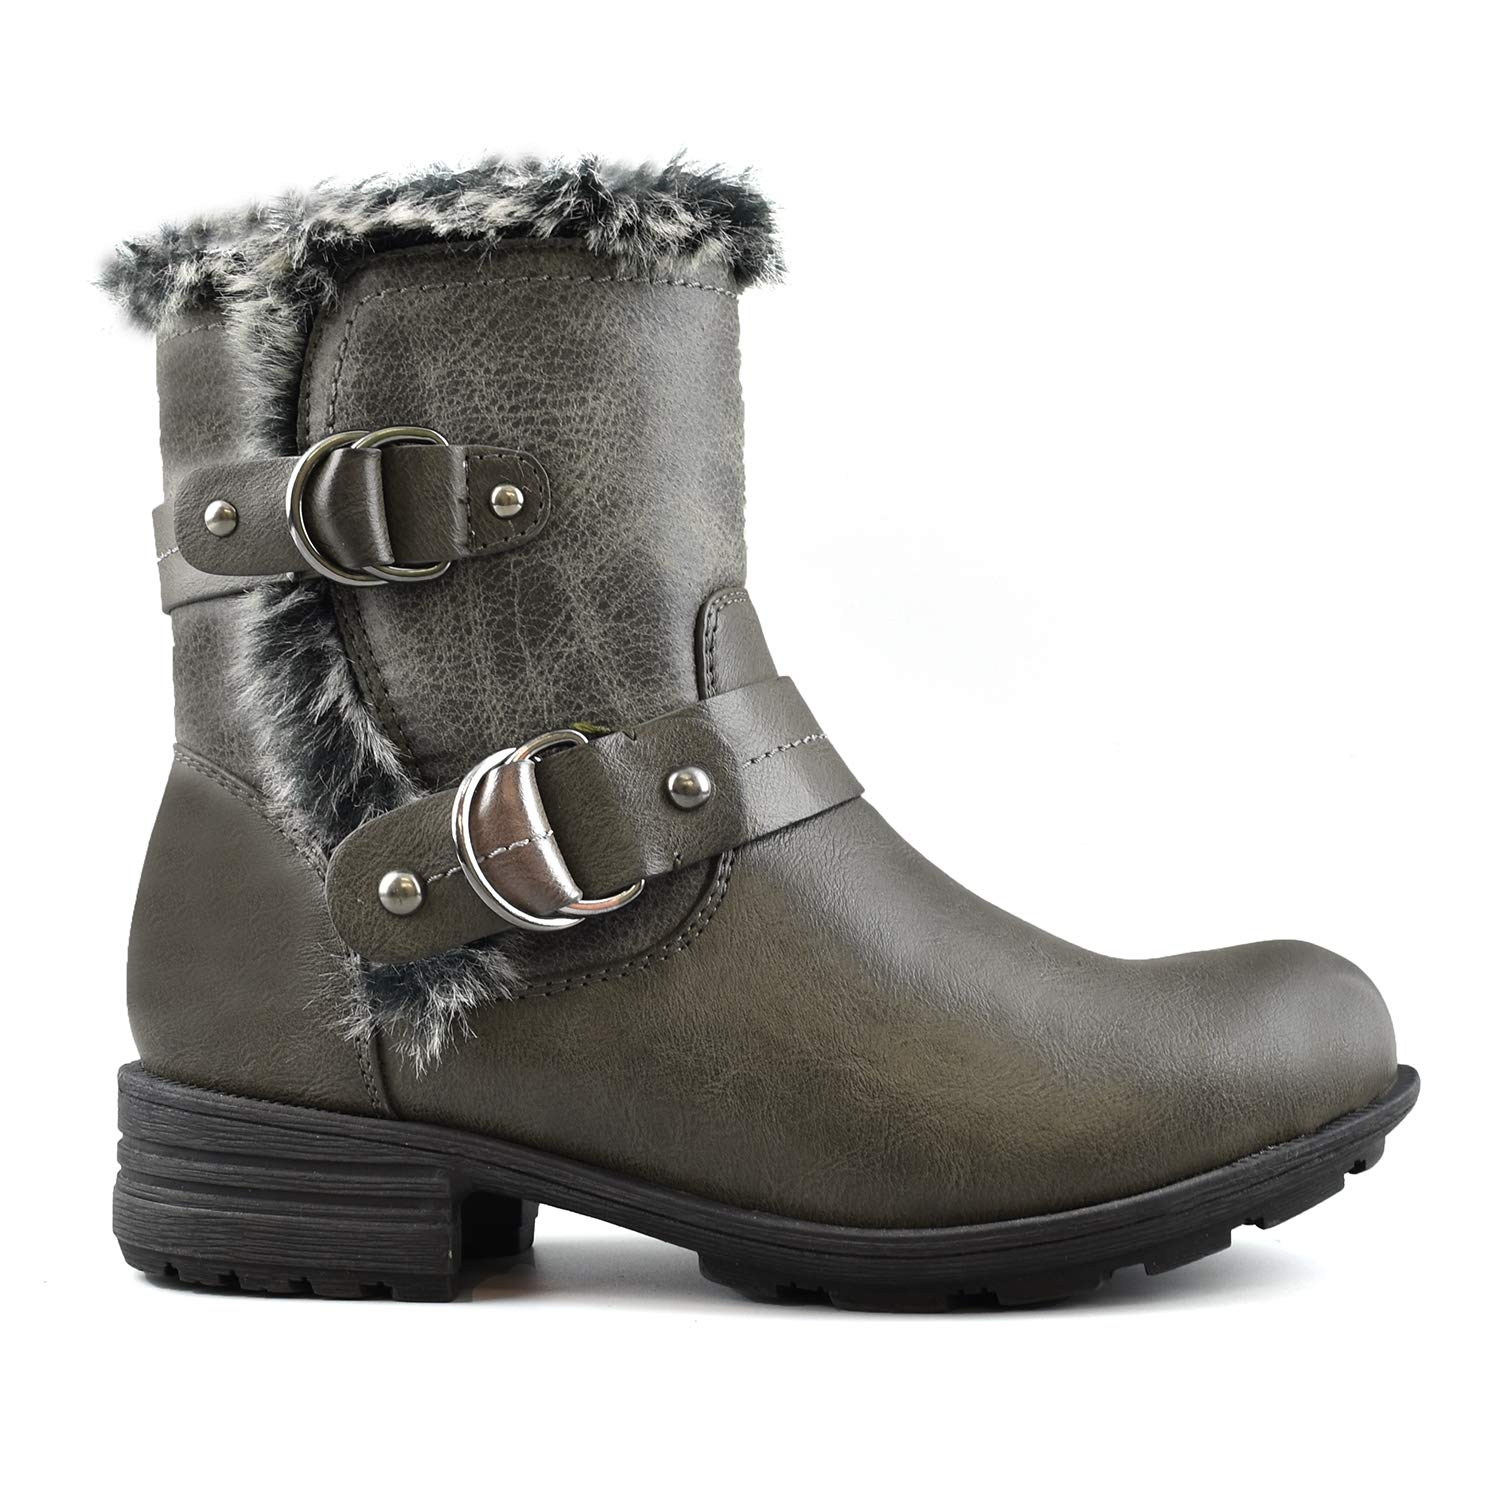 Comfy Moda Women's Winter Boots 3M Thinsulate Memory Foam Super Warm Comfy Wide Fitting Size 12 Available - Meghan (9, Smokey Grey)